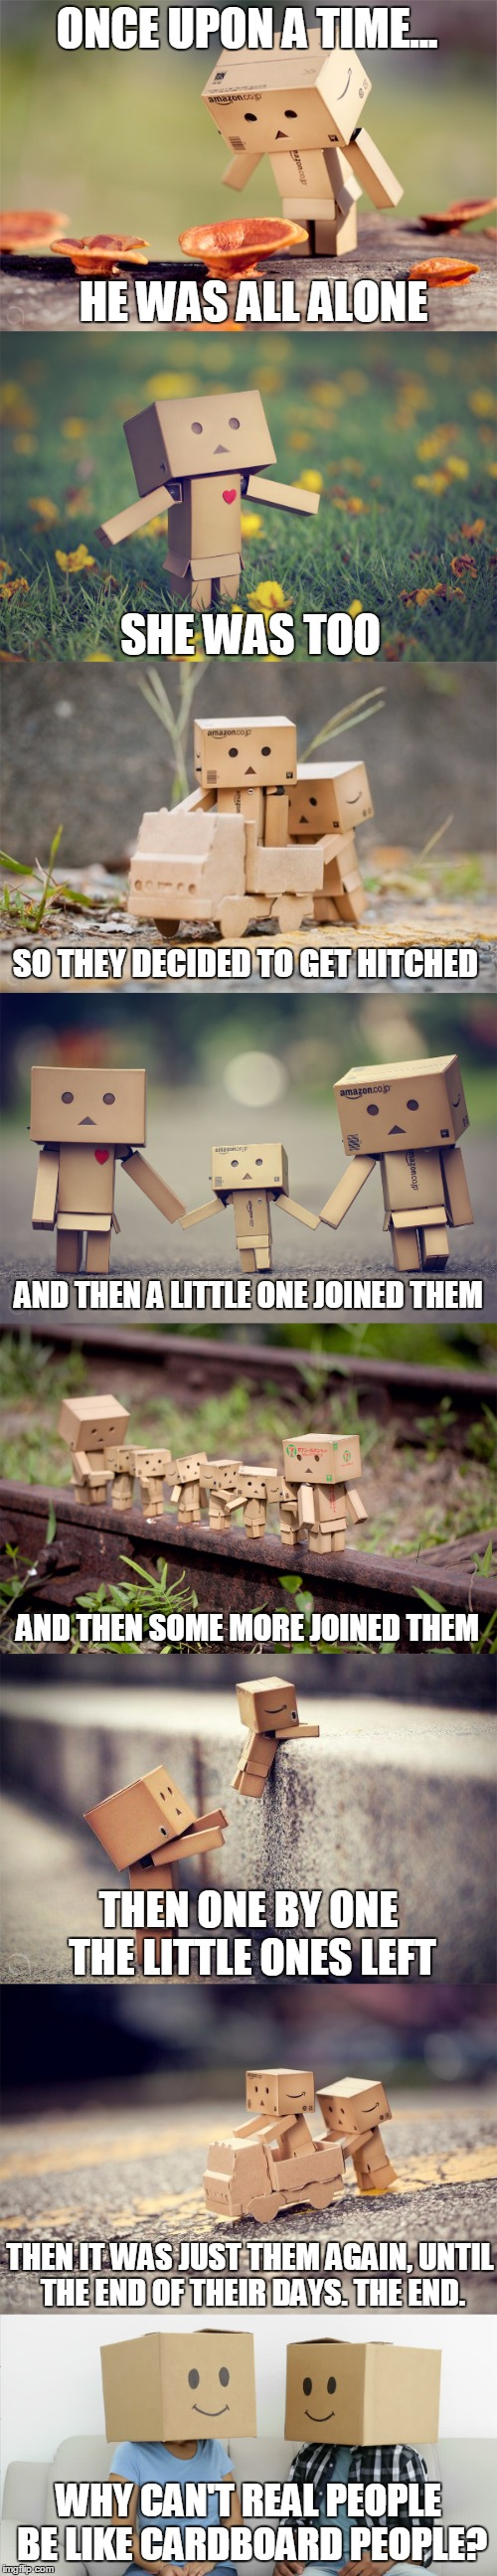 A Tale In Cardboard | ONCE UPON A TIME... WHY CAN'T REAL PEOPLE BE LIKE CARDBOARD PEOPLE? HE WAS ALL ALONE SHE WAS TOO SO THEY DECIDED TO GET HITCHED AND THEN A L | image tagged in memes,relationships,men and women,marriage,cardboard,people | made w/ Imgflip meme maker